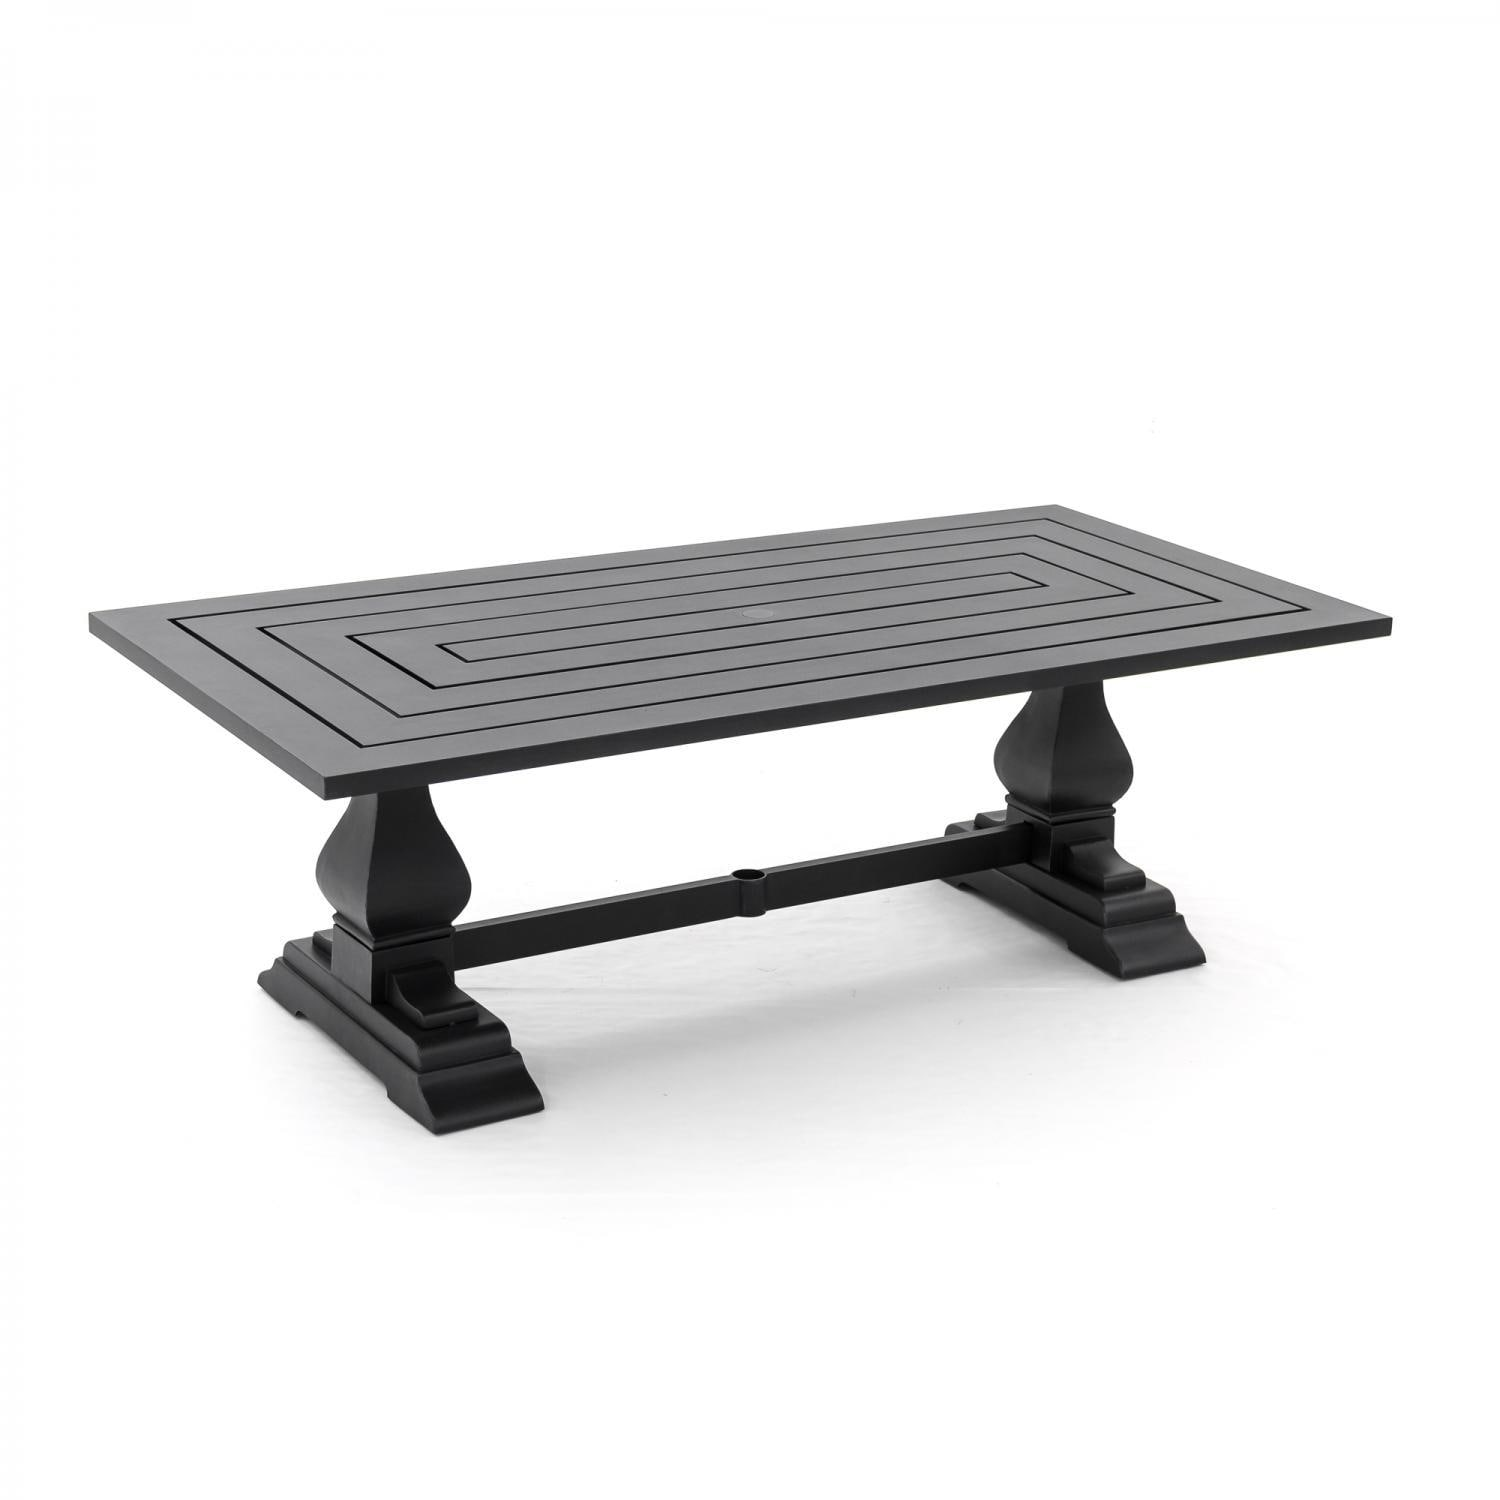 St Charles X Inch Cast Aluminum Rectangular Patio Dining - Rectangular metal patio dining table